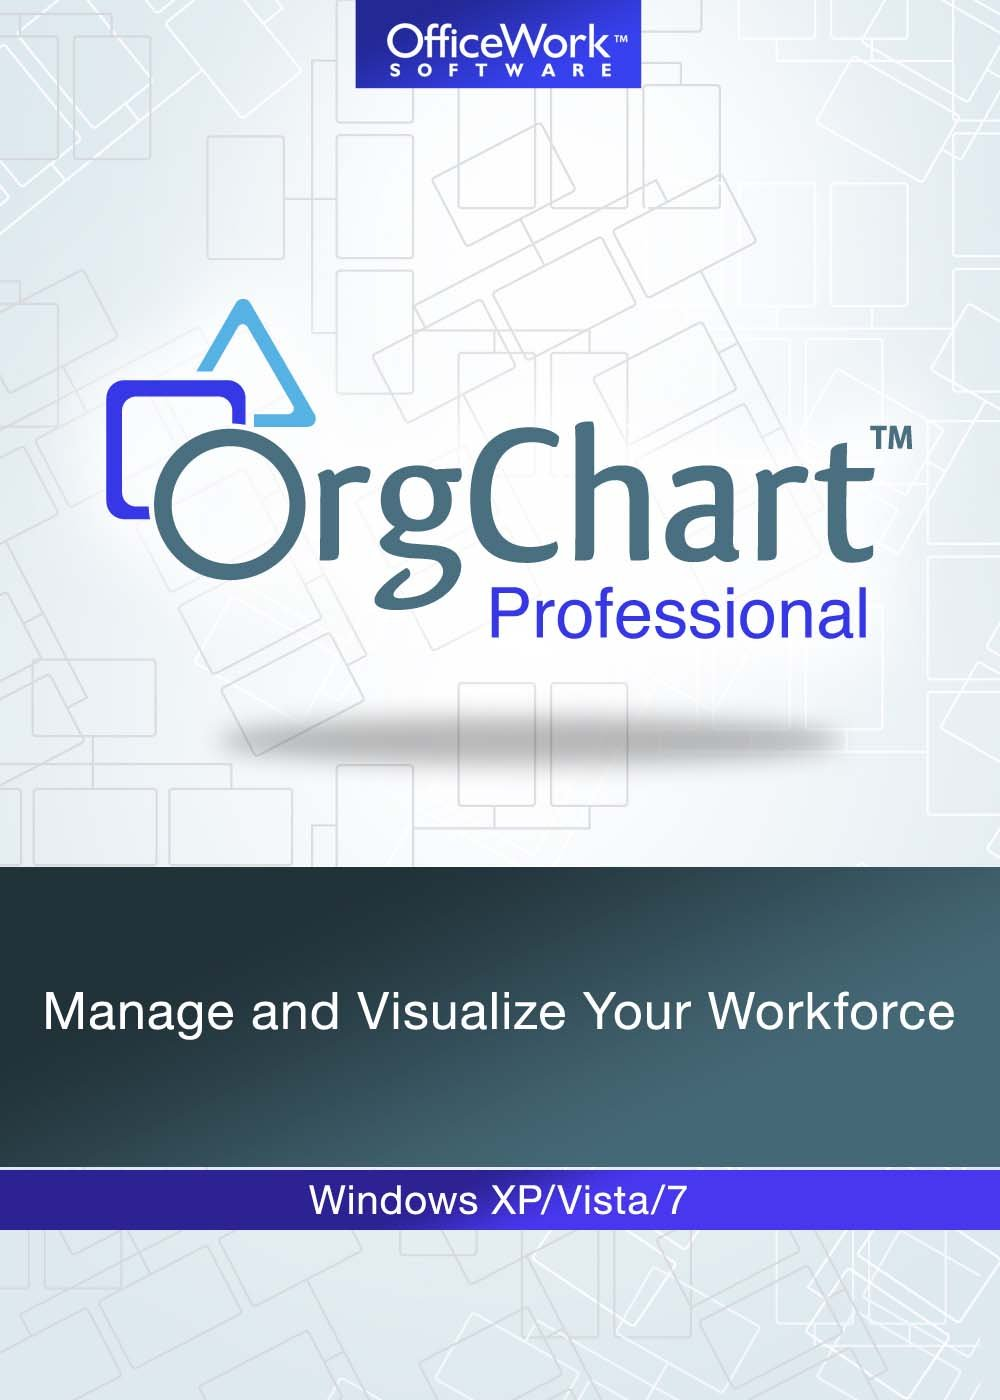 OrgChart Profession v6 250 Charting Limit [Download] by OfficeWork Software, LLC